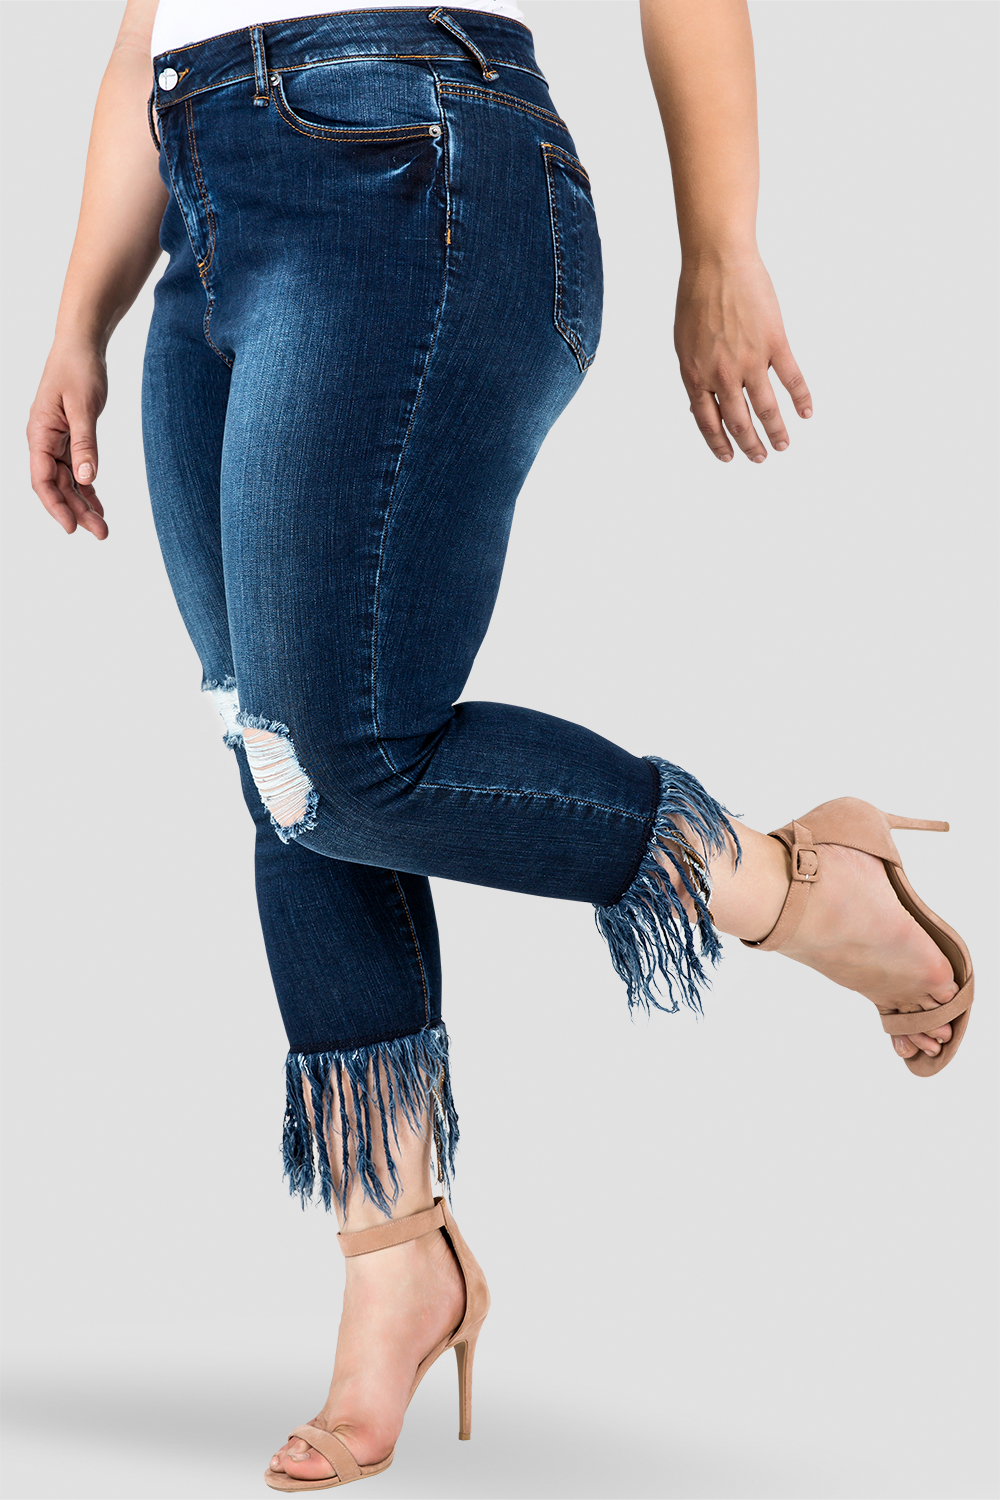 Plus Size Standards & Practices Women's Fringe Frayed Hem Distressed Indigo Stretch Jeans